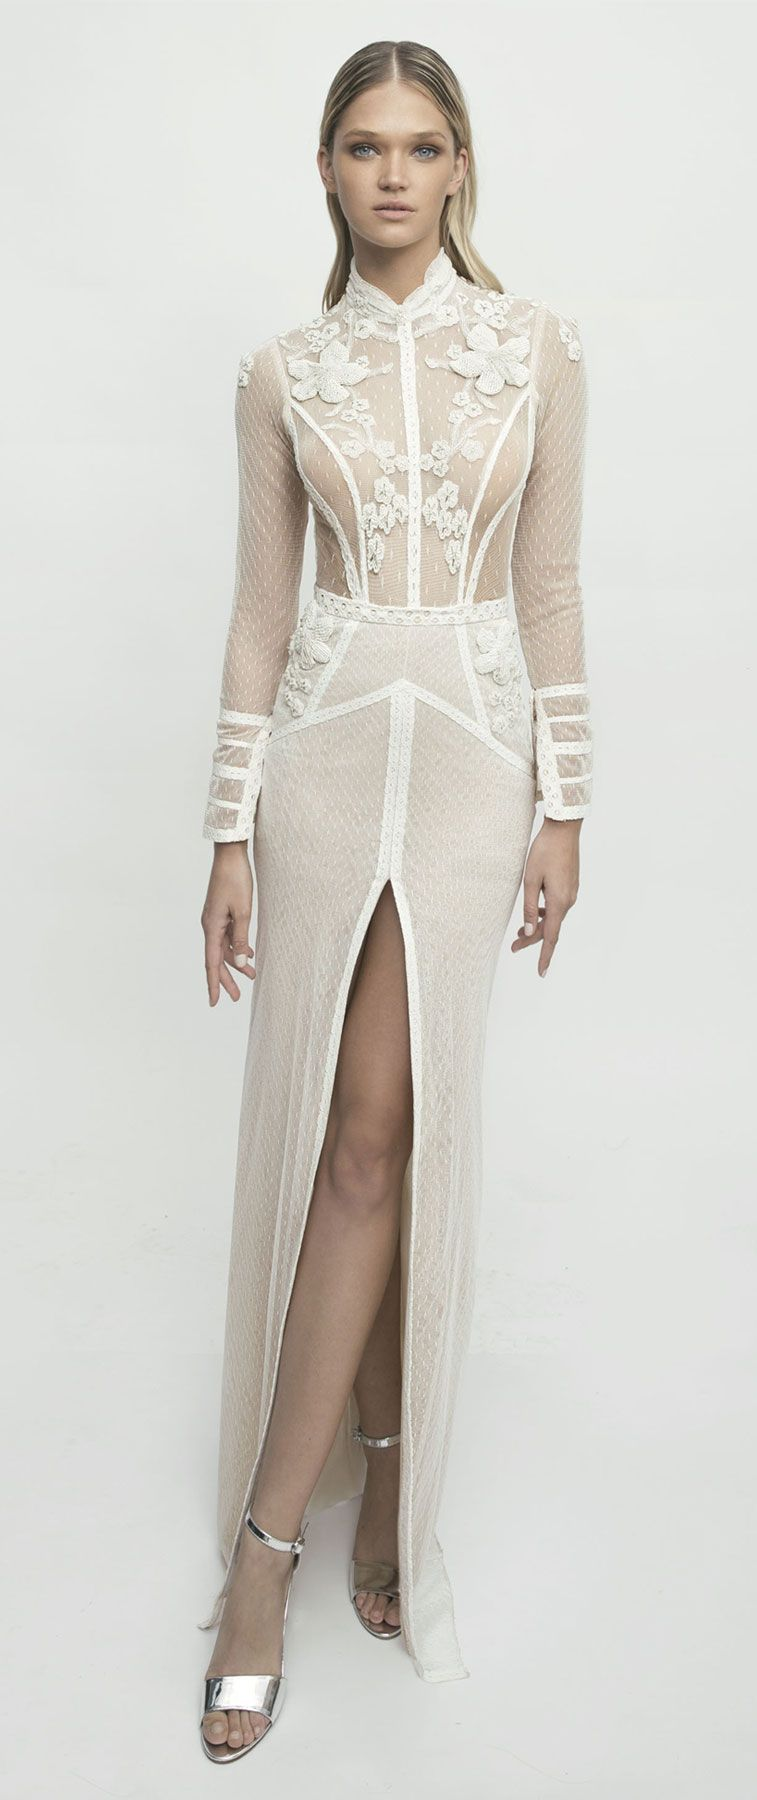 Lior Charchy NYC 2017 Bridal Collection